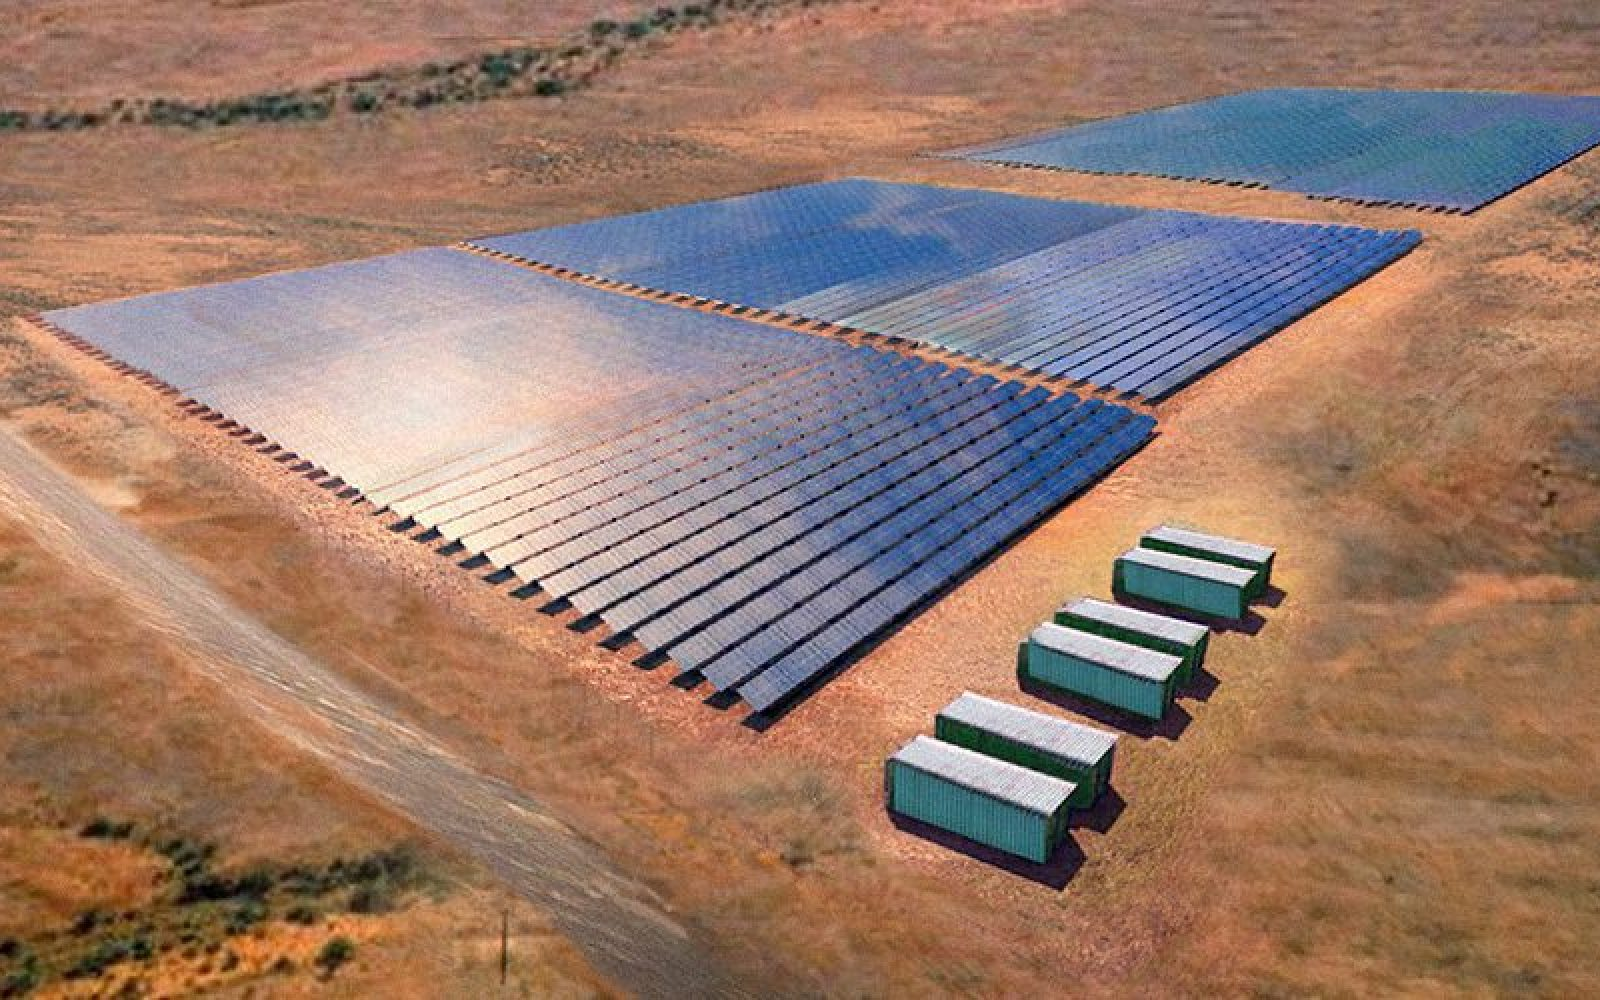 World's largest solar+battery project announced in South Australia: 330MW of solar & 100MW/400MWh of batteries